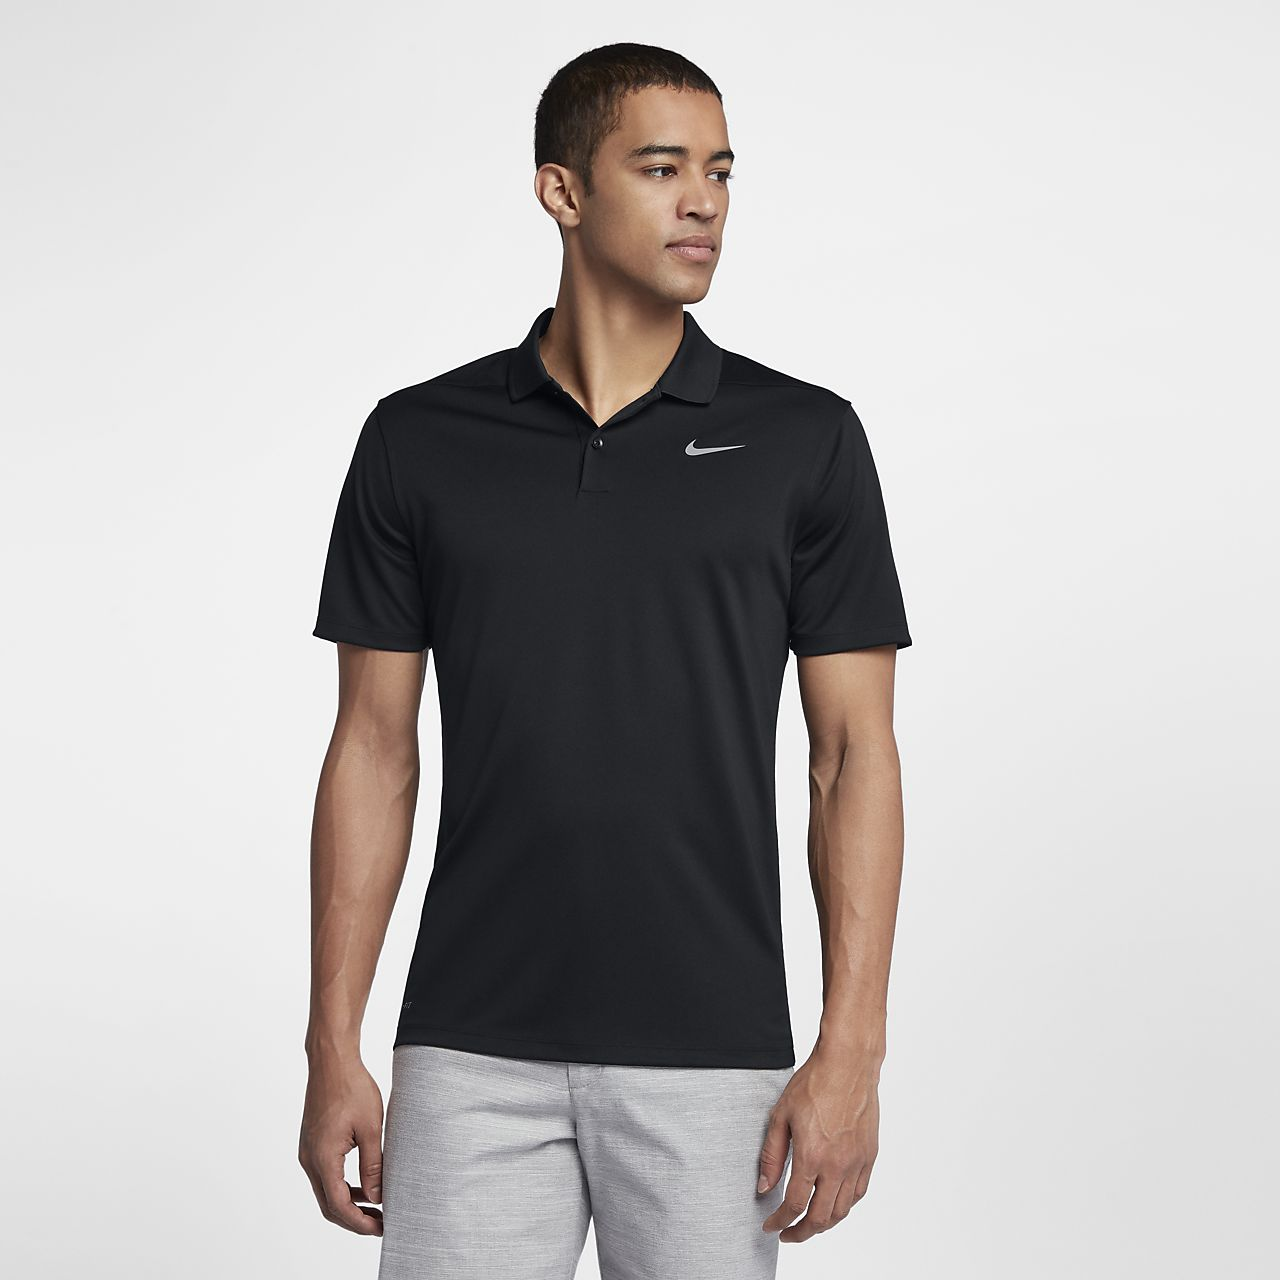 34dde758d Nike Dri Fit Mens Polo Shirts – EDGE Engineering and Consulting Limited